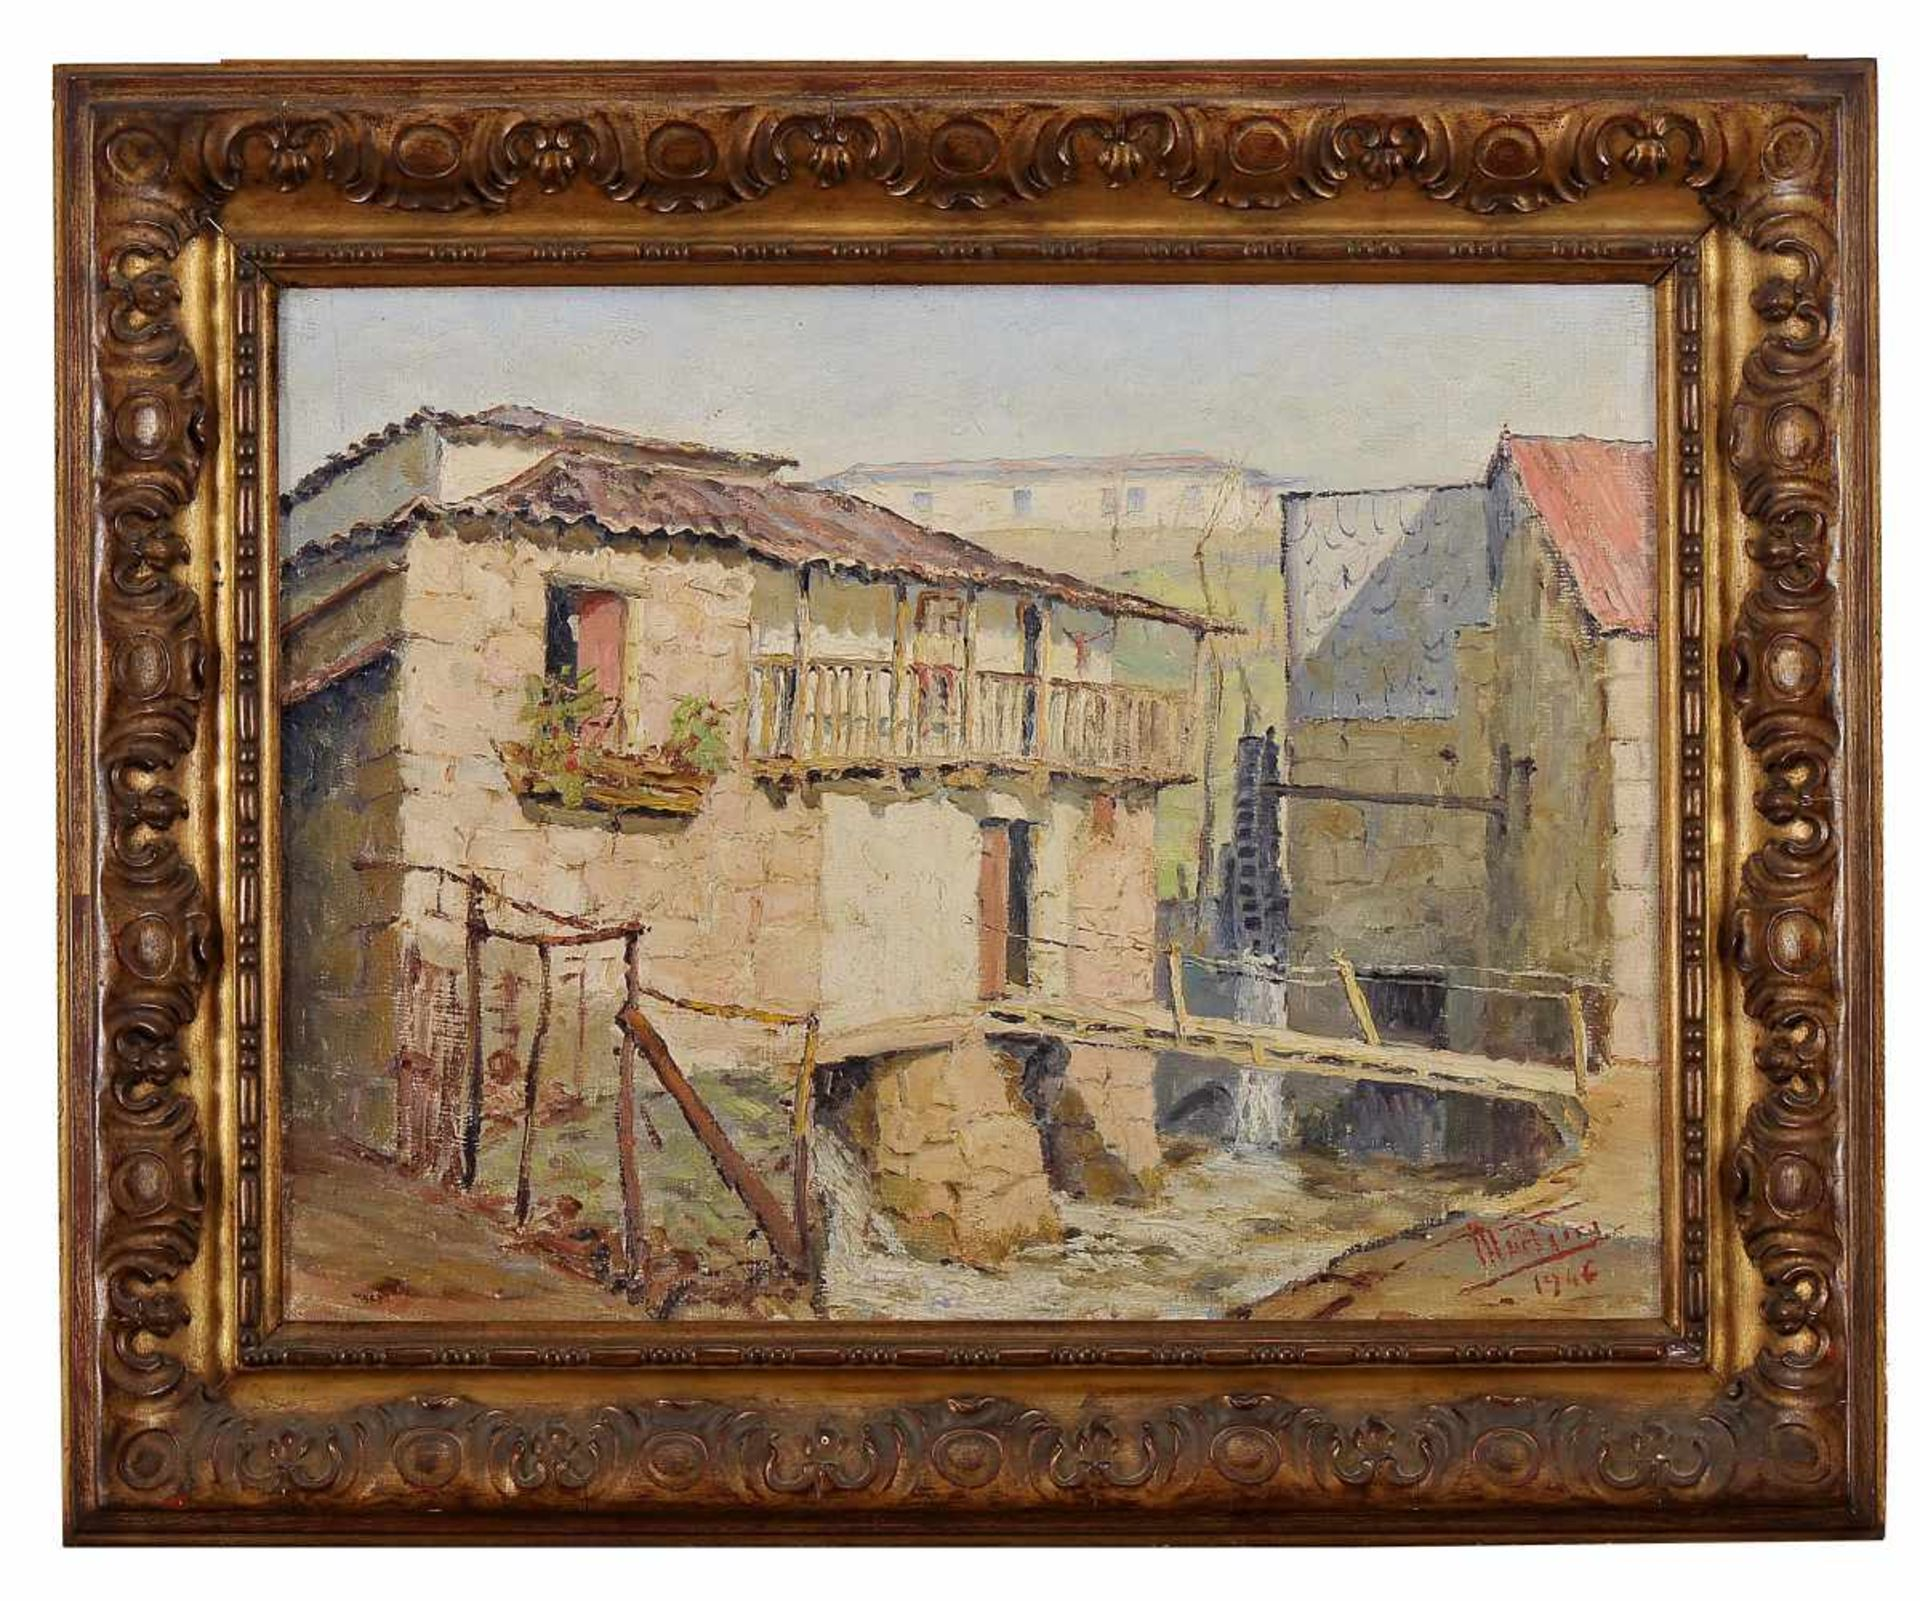 """Los 95 - """"Margens do Ceira""""JAIME MURTEIRA - 1910-1986, """"Margens do Ceira"""", oil on canvas, signed and dated..."""